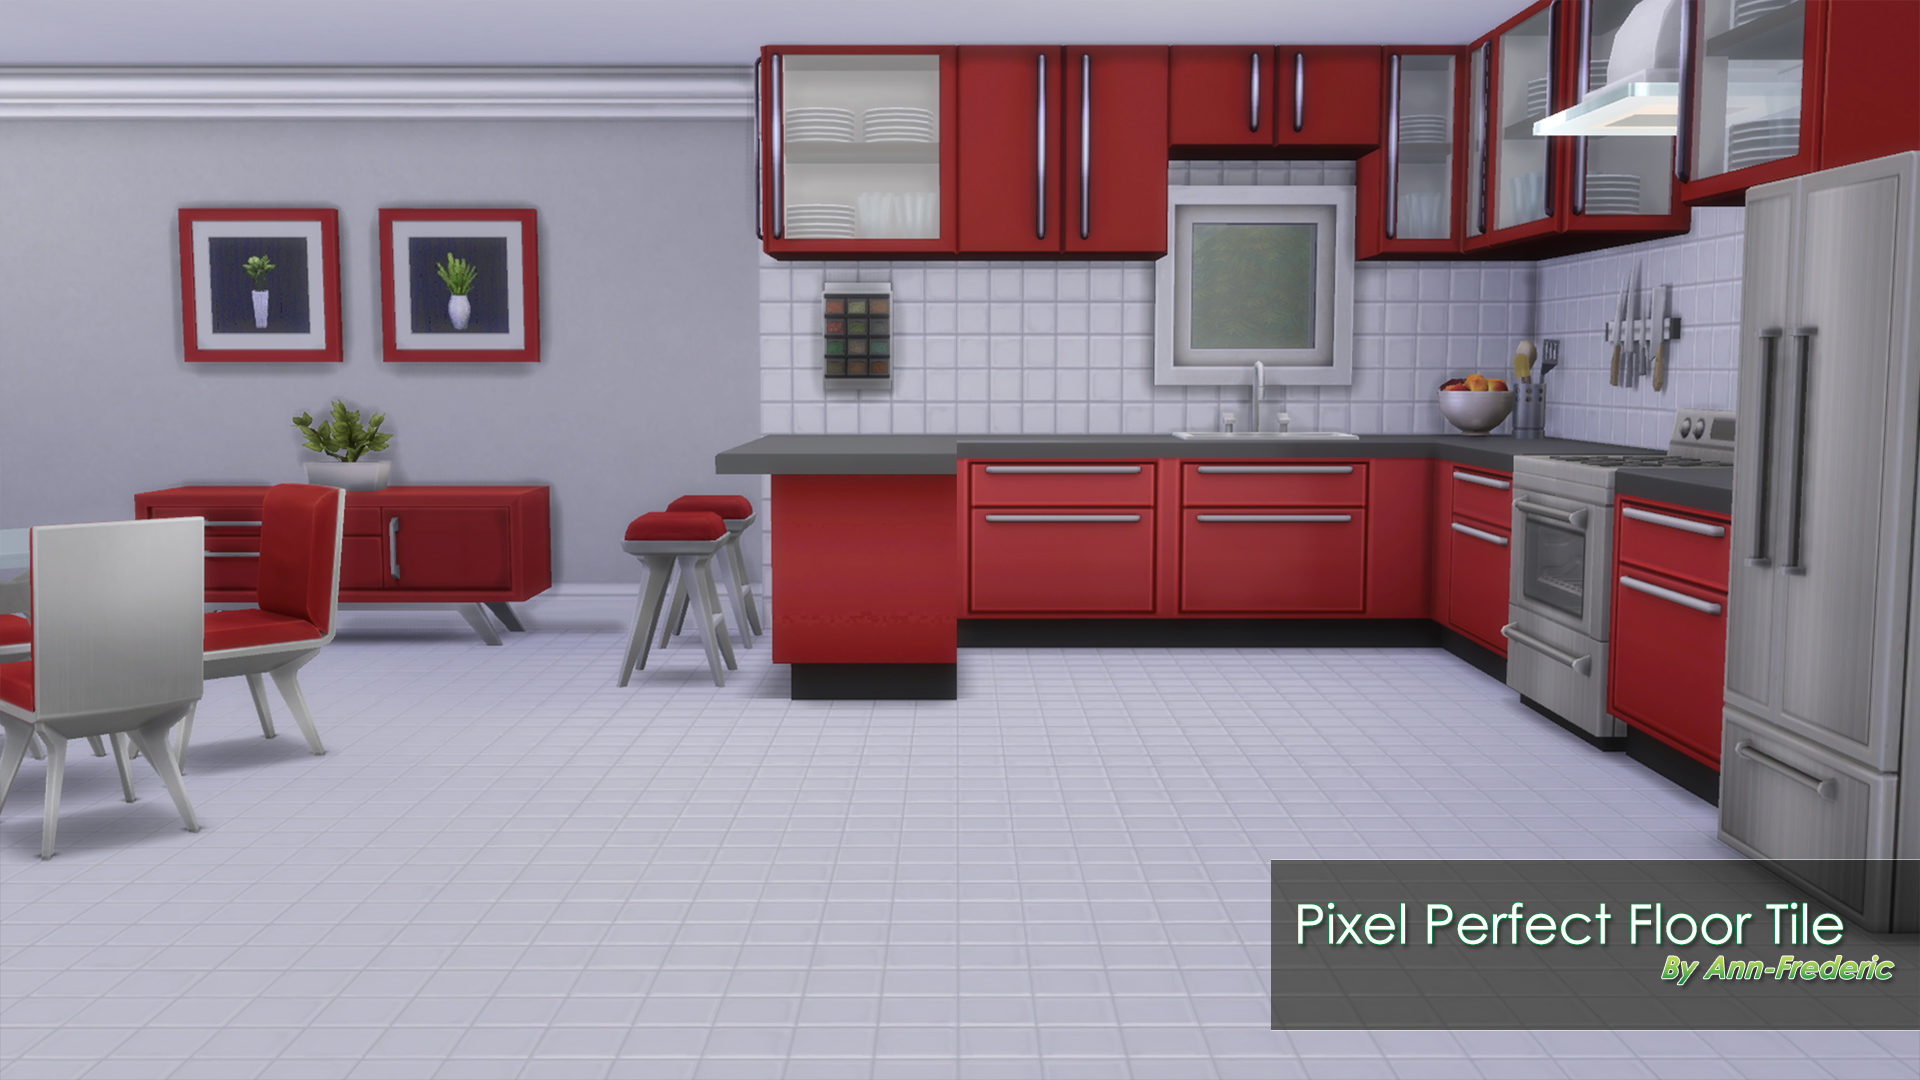 Matching kitchen floor and wall tiles choice image tile flooring mod the sims pixel perfect floor tile match maxiss wall advertisement doublecrazyfo choice image dailygadgetfo Choice Image